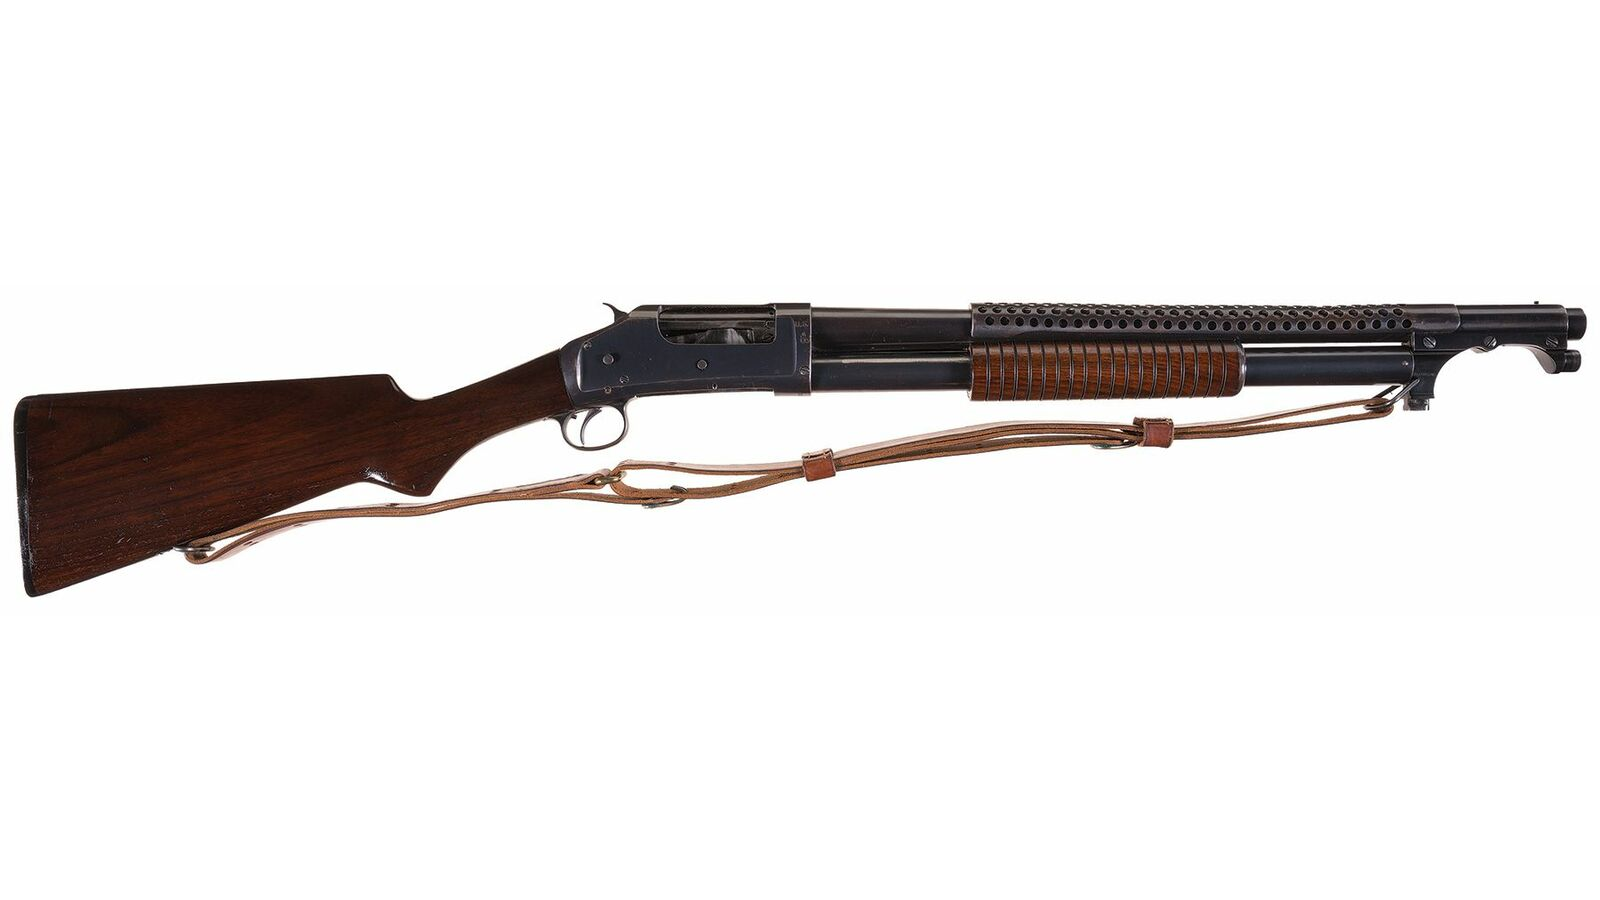 100 Pictures of 1897 Trench Gun